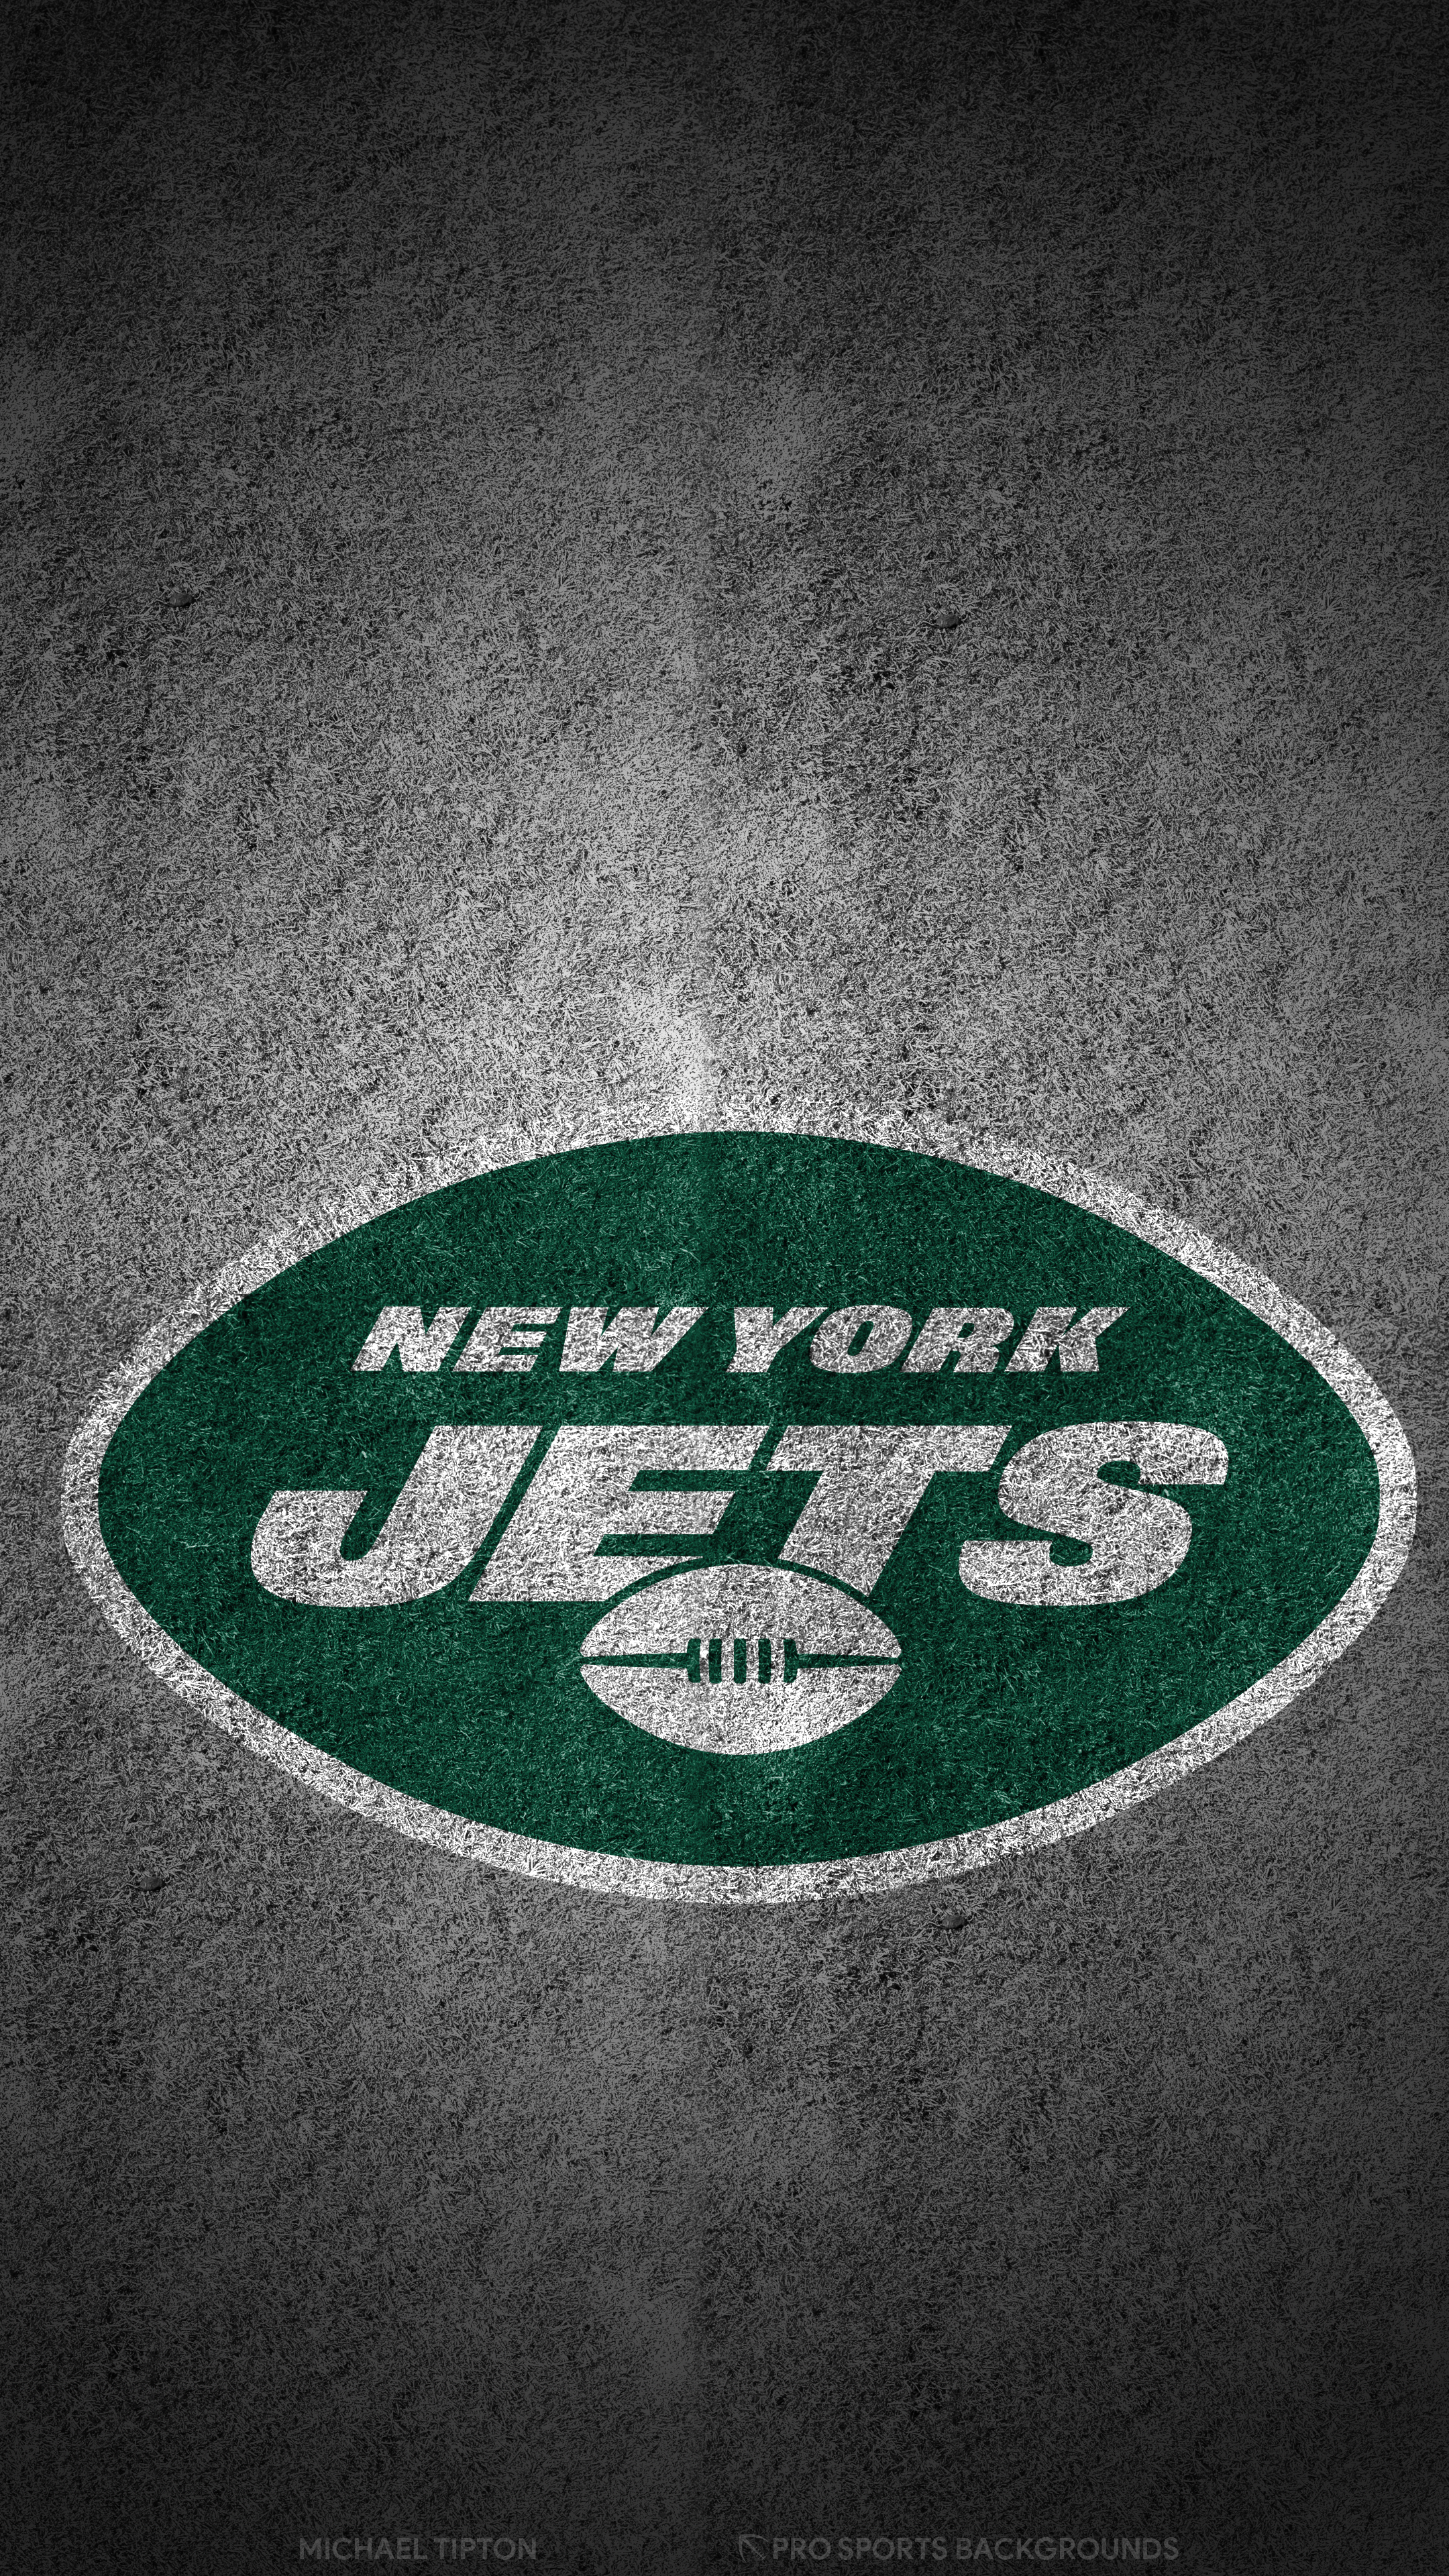 Pin By Zachary King On Football Team New York Jets Mobile Logo